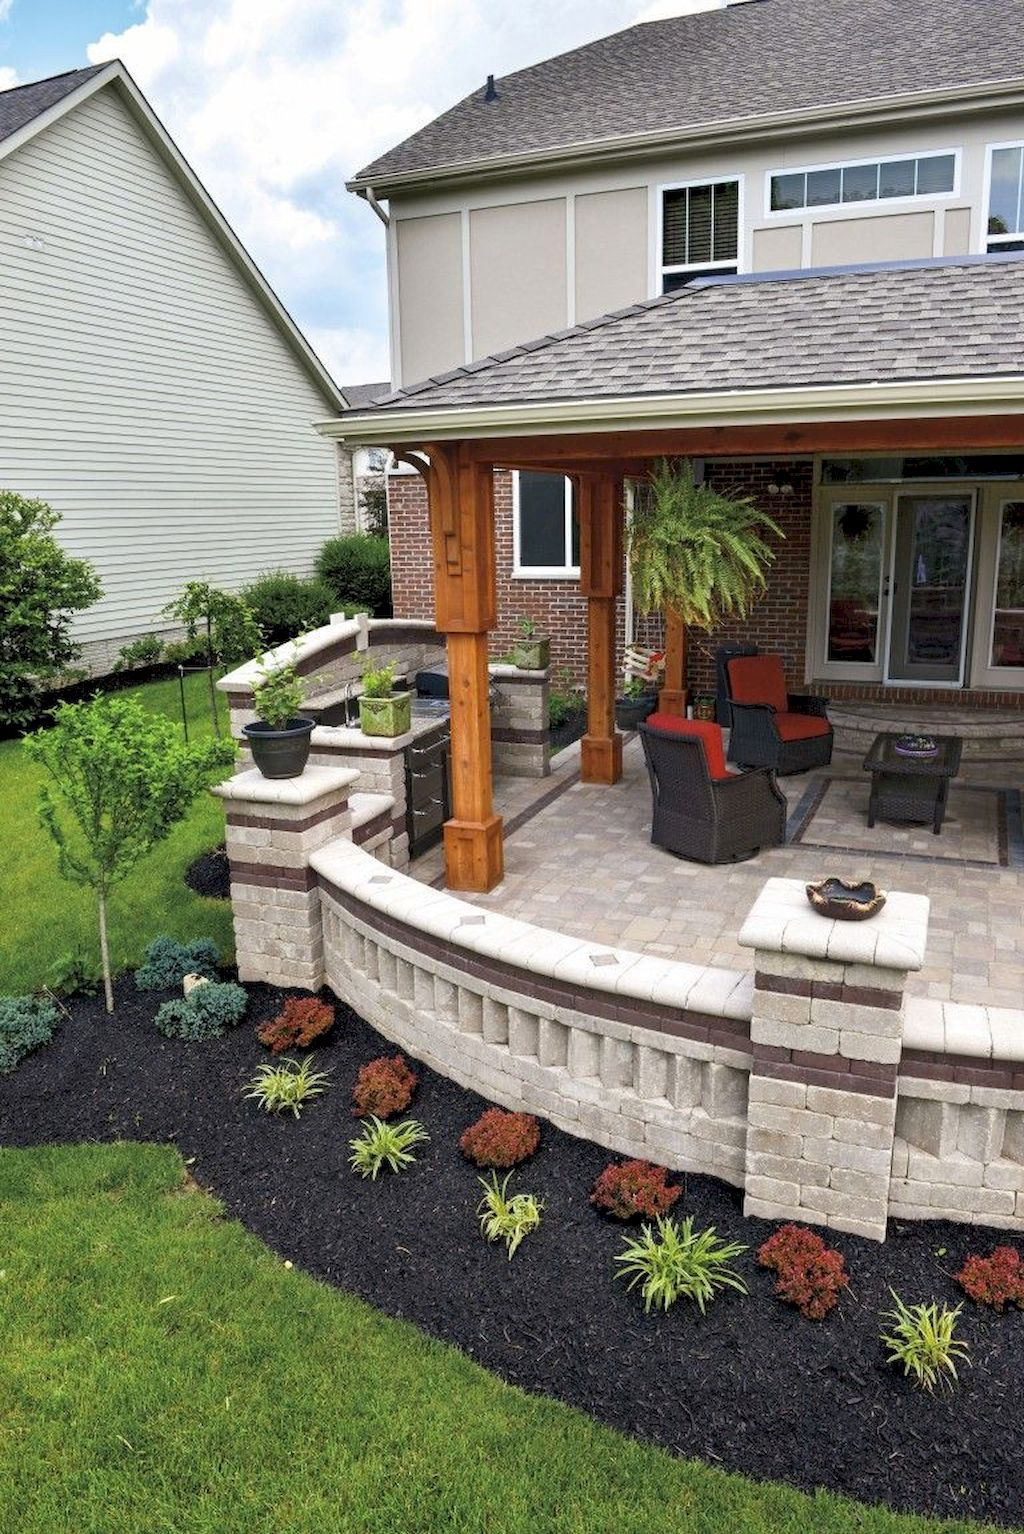 Awesome 60 Stunning Backyard Patio And Deck Design Ideas Https